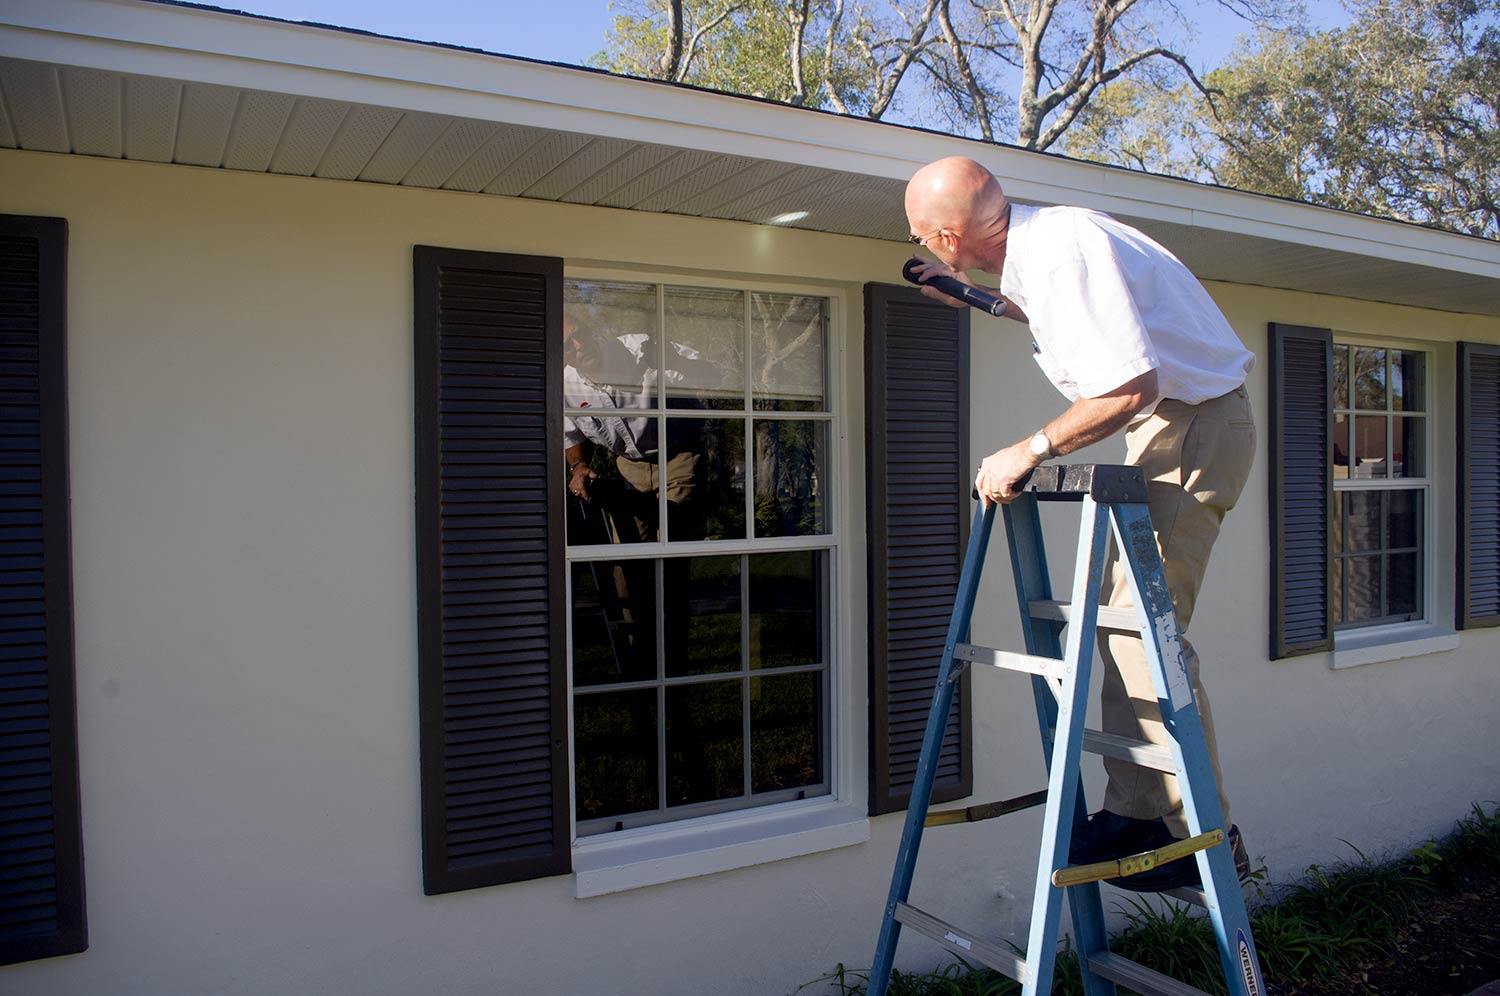 Residential Pest Control Services in Volusia and Flagler